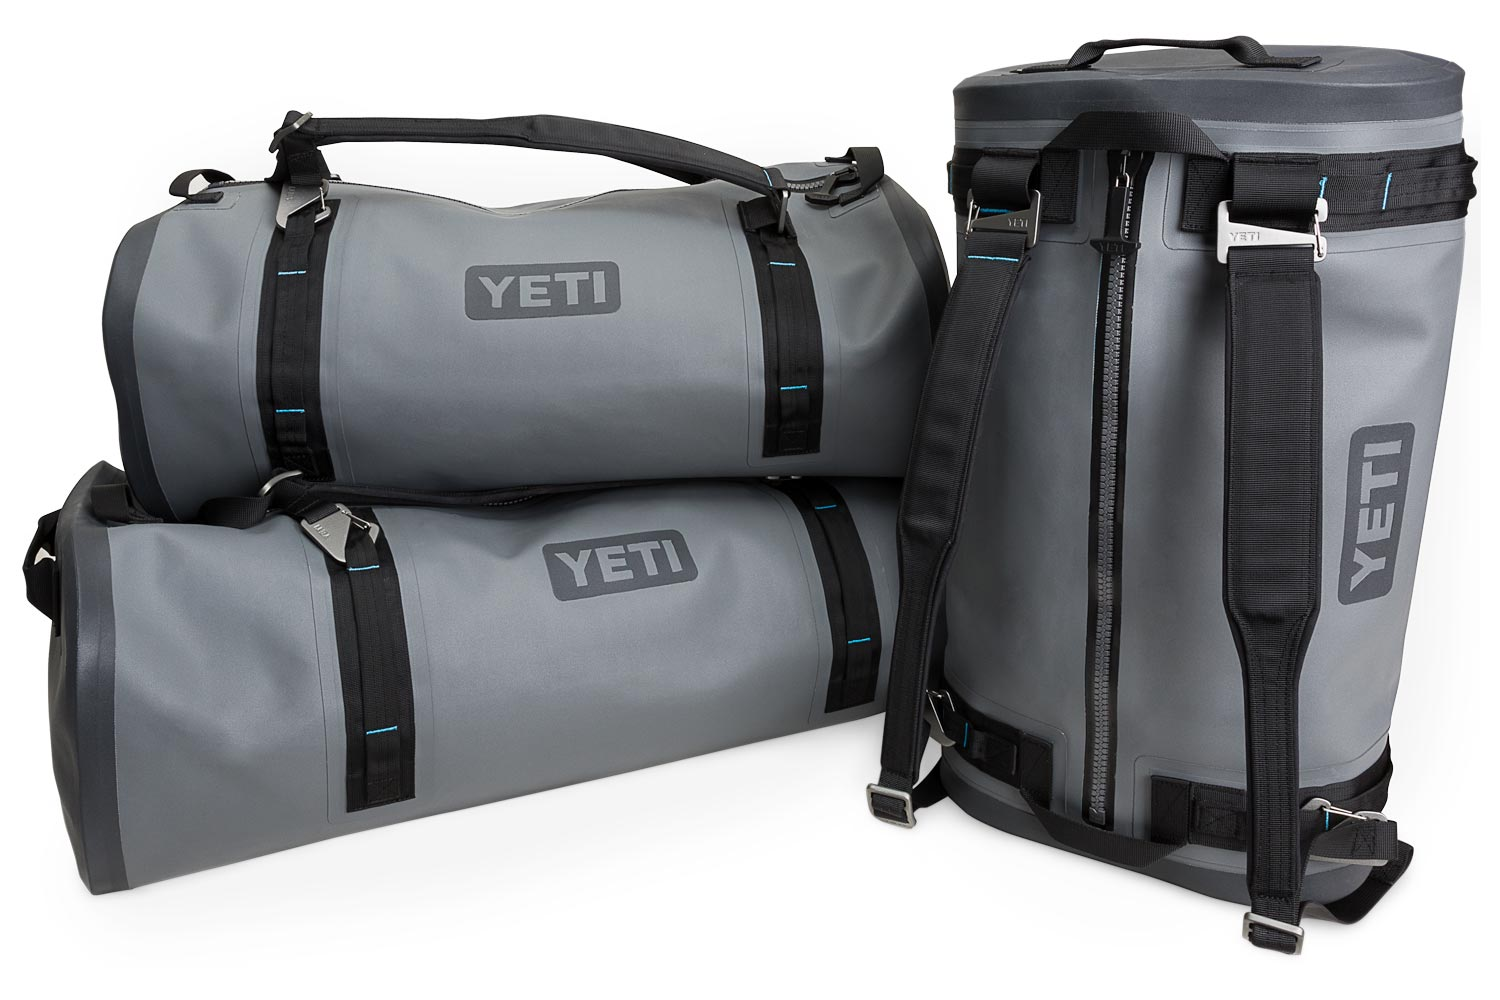 The waterproof Panga duffle is among the new products YETI recently unveiled. (Photo courtesy of YETI)